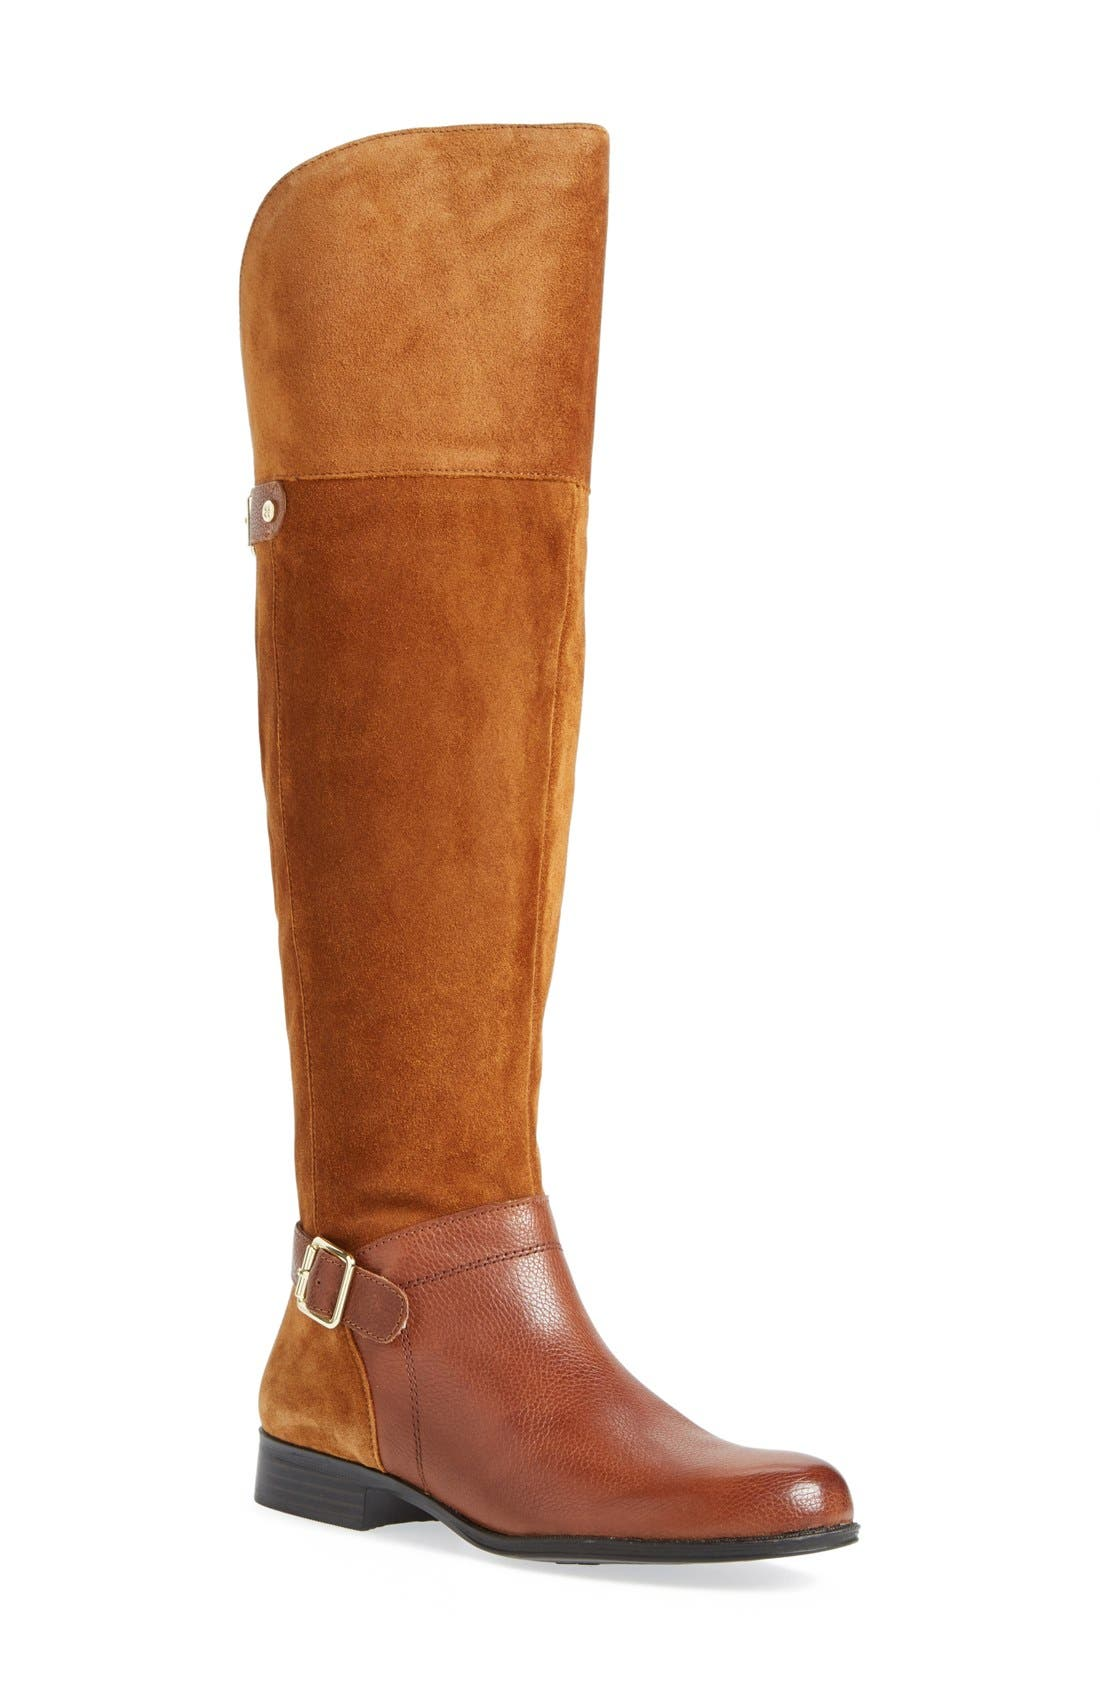 Main Image - Naturalizer'July' Over the Knee Boot (Women) (Wide Calf)